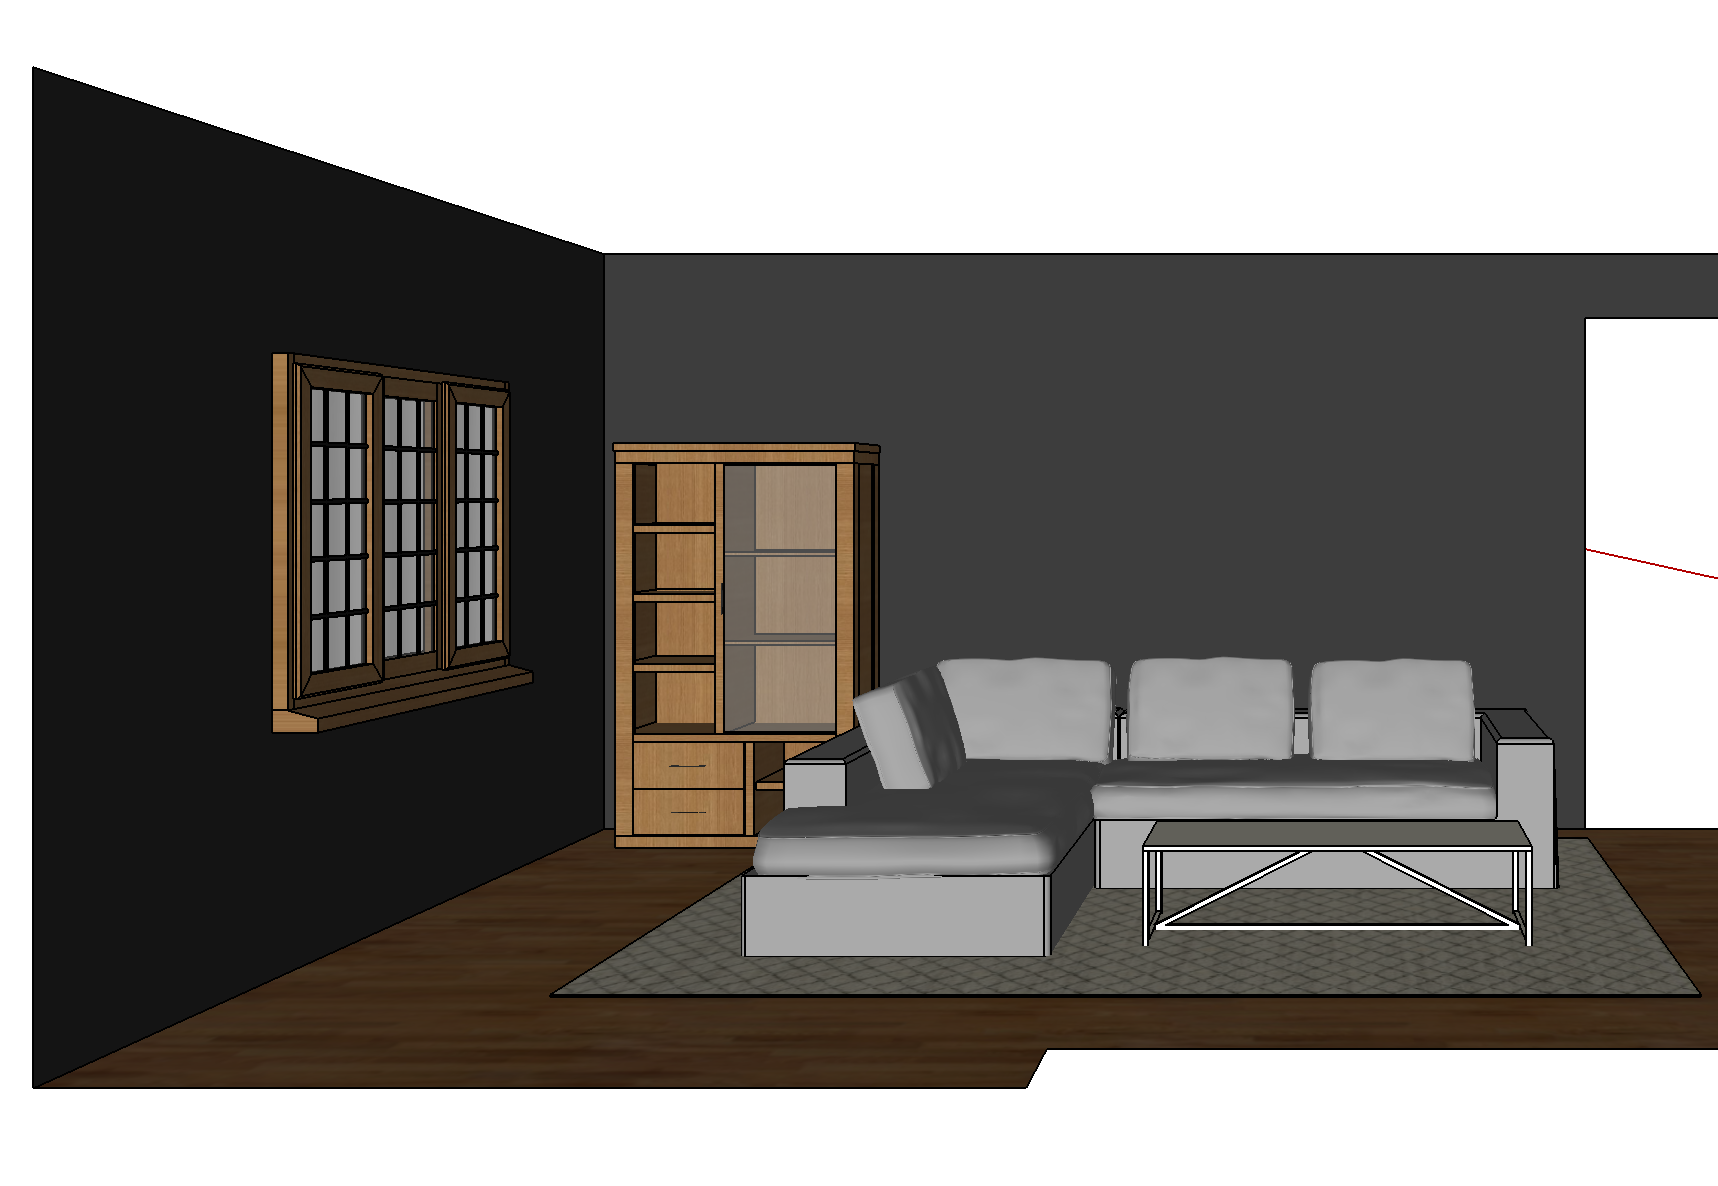 SketchUp Living Room